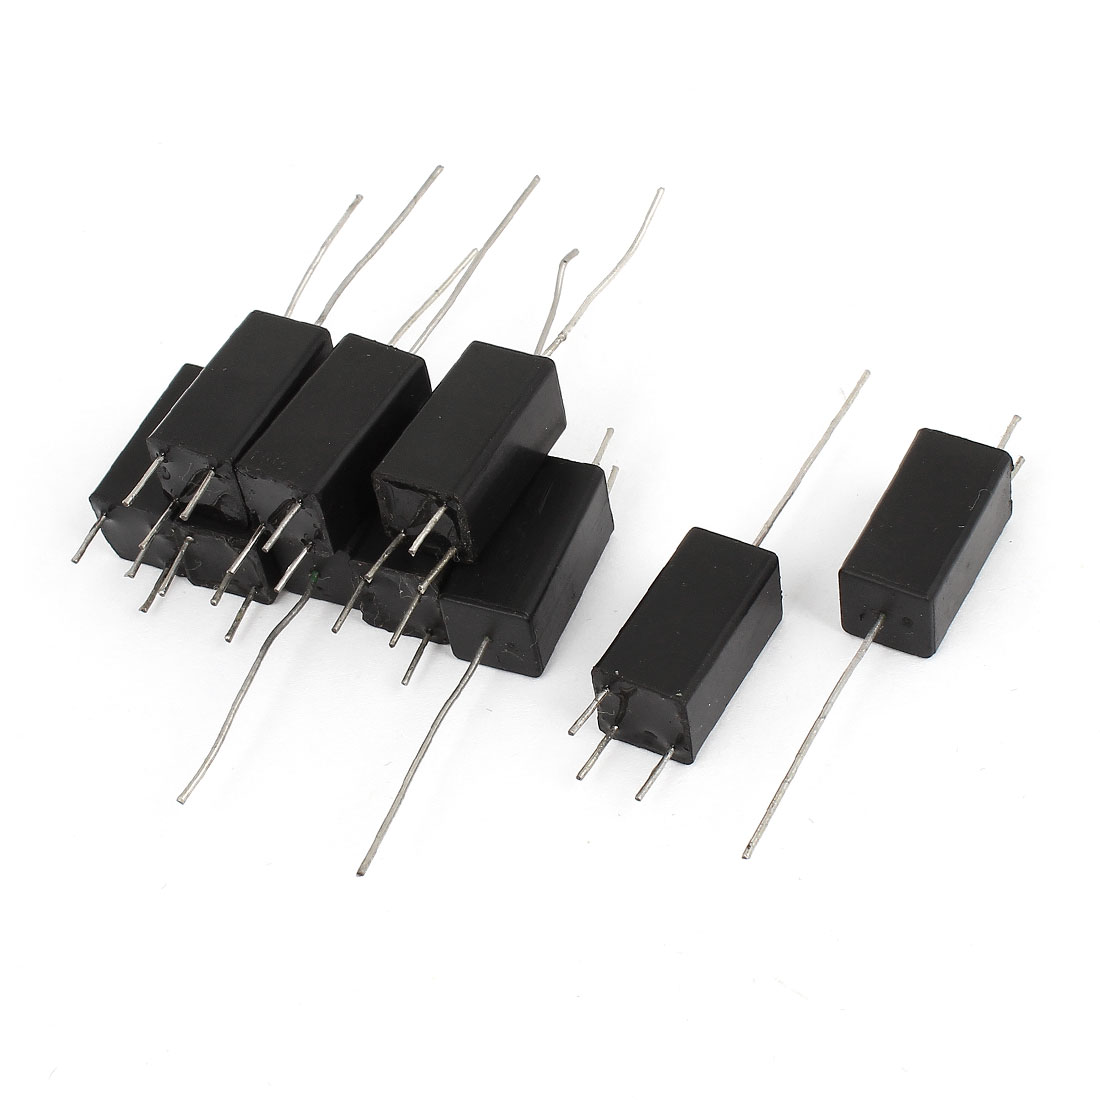 ZS1052-1 8KV-10KV Flash Trigger Coil Transformer Flashtube Flash Tube Xenon 10 Pcs